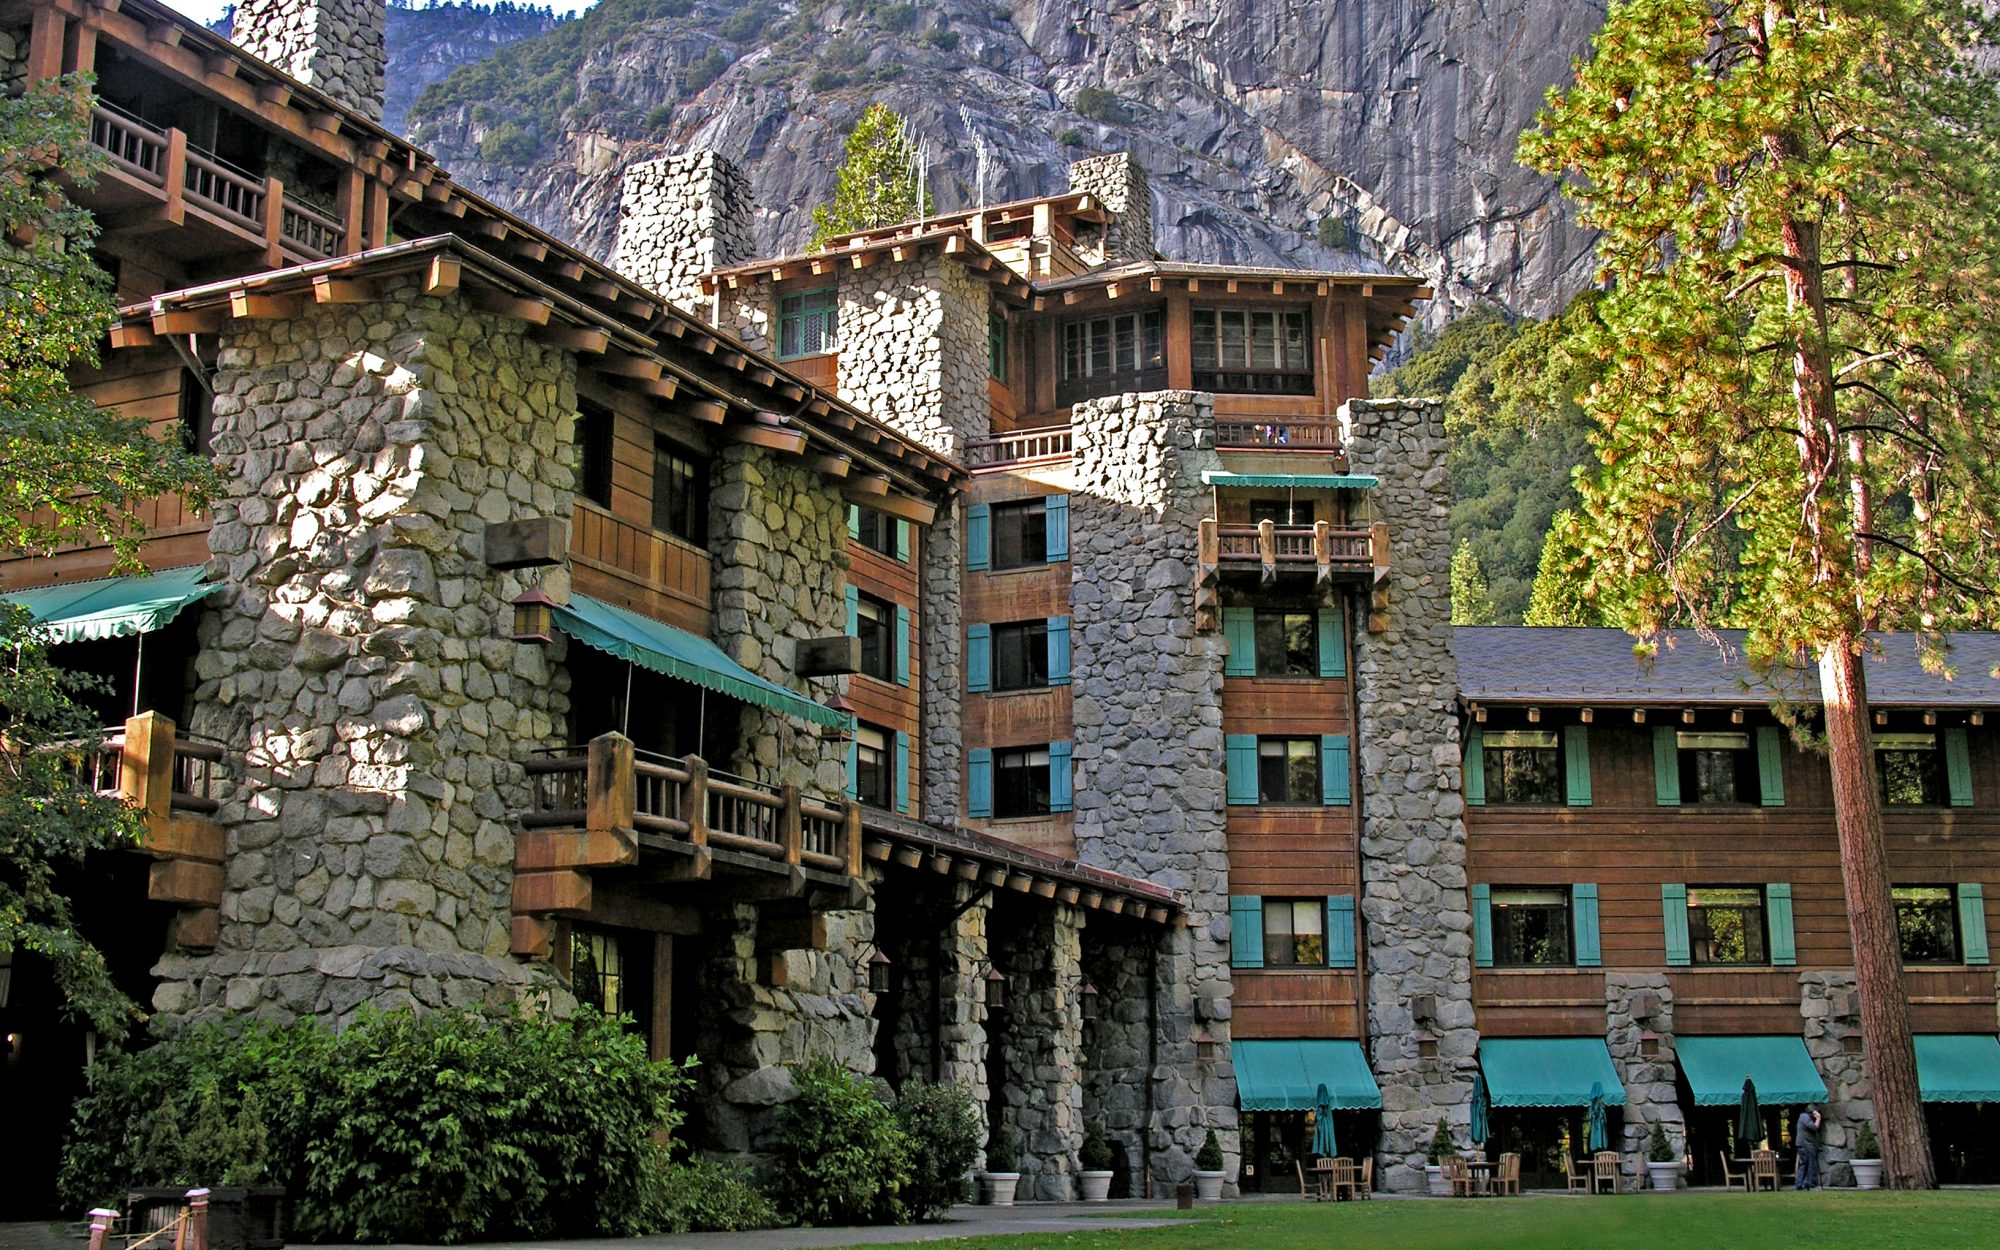 Great National Park Lodges: The Ahwahnee